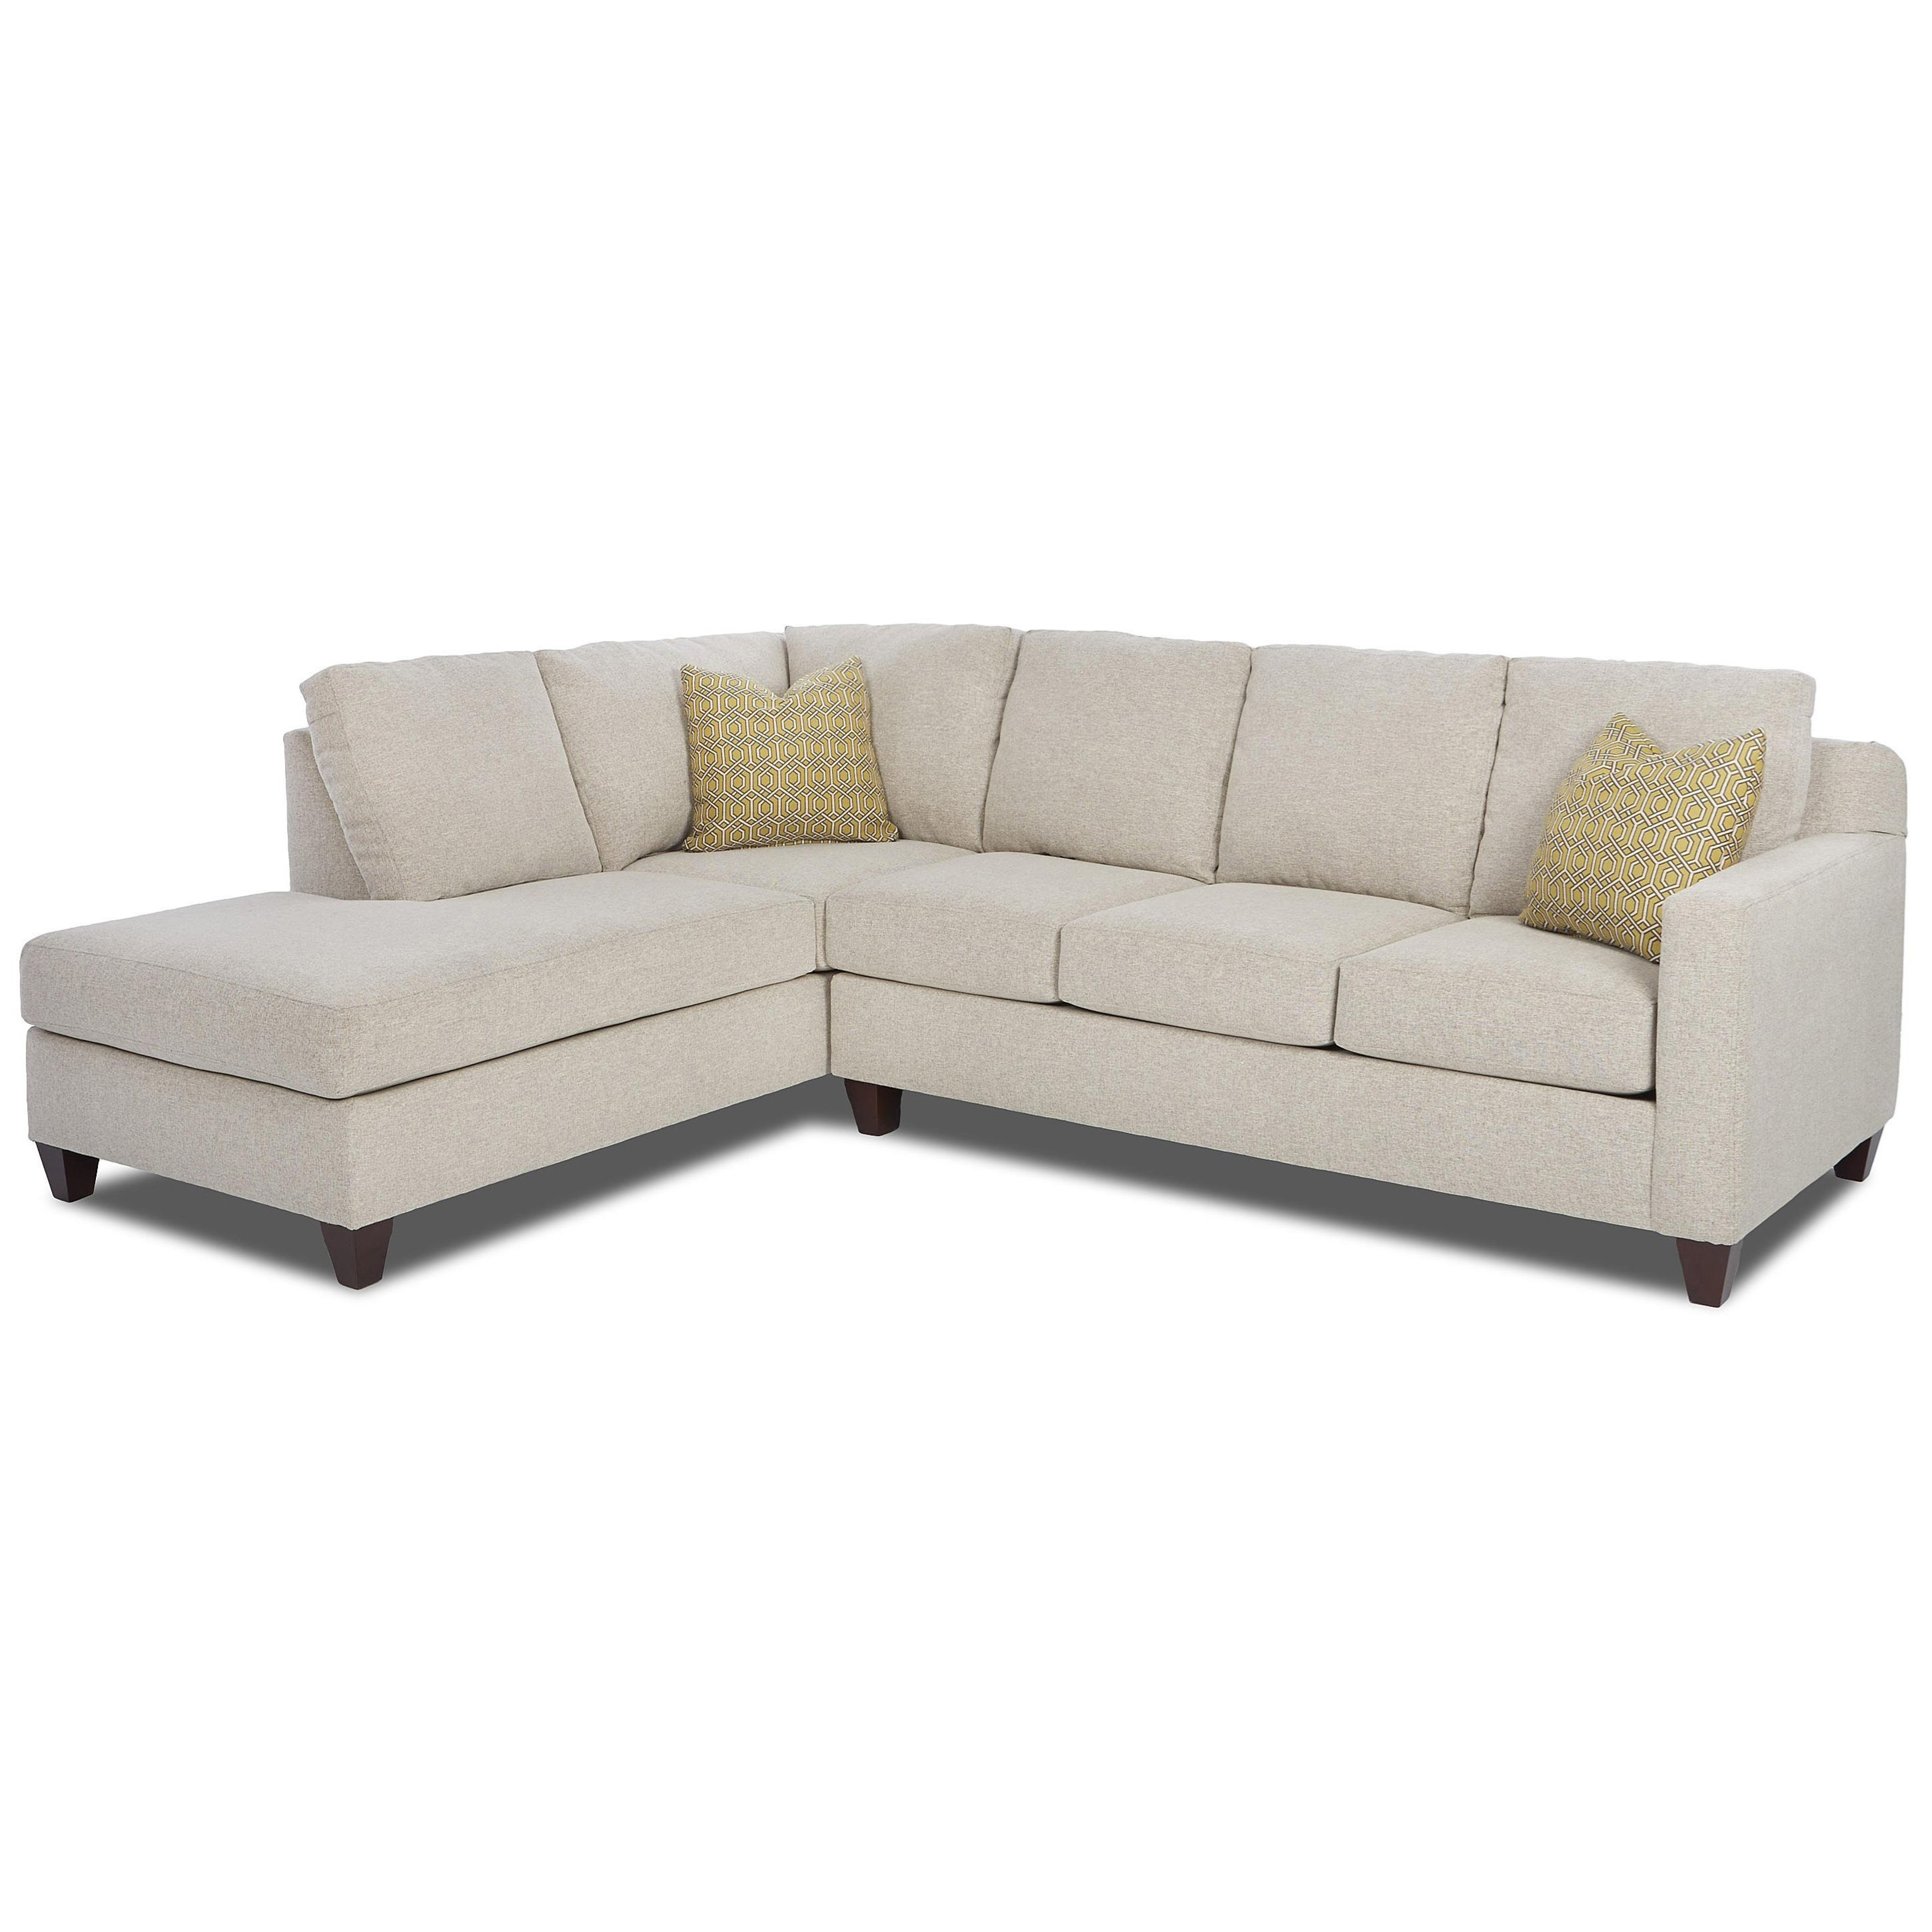 Klaussner bosco contemporary 2 piece sectional with left for 2 piece sectional with chaise lounge